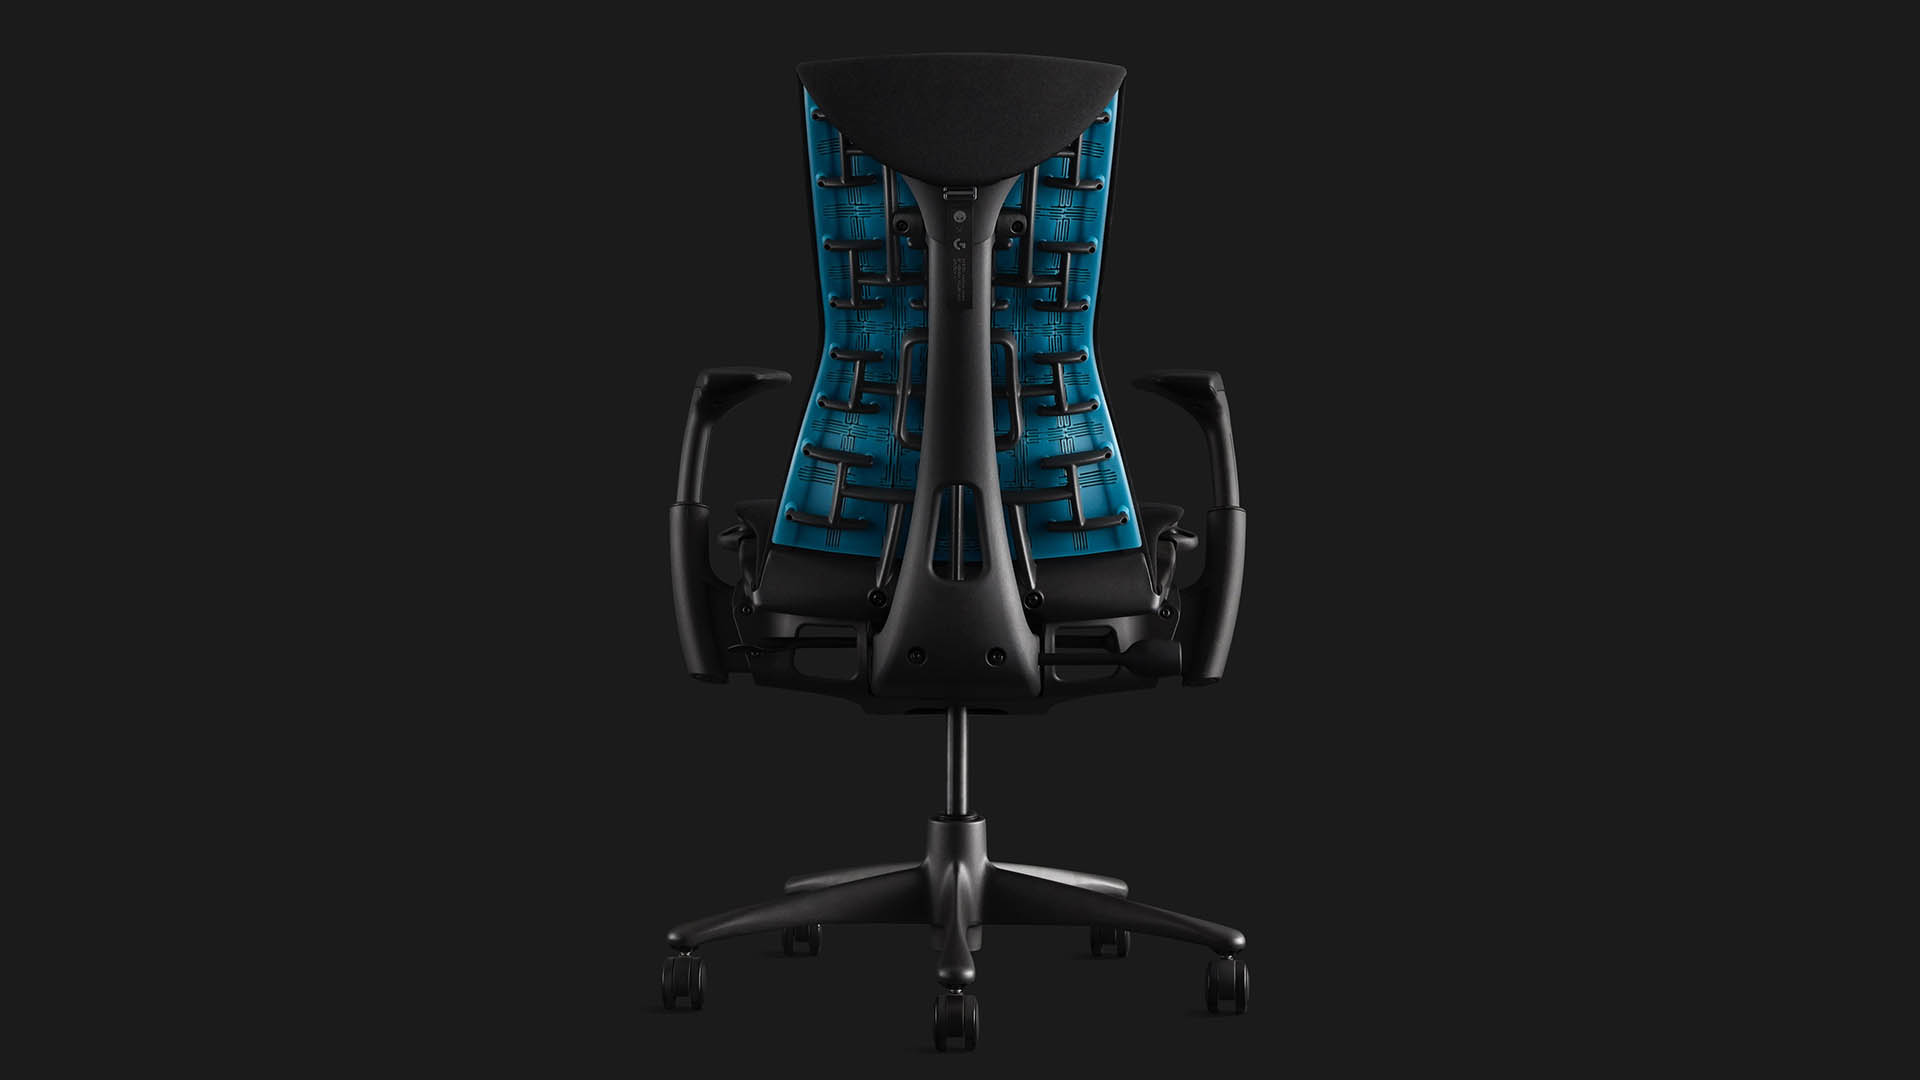 Herman Miuller Logitech G Embody gaming chair from various angles